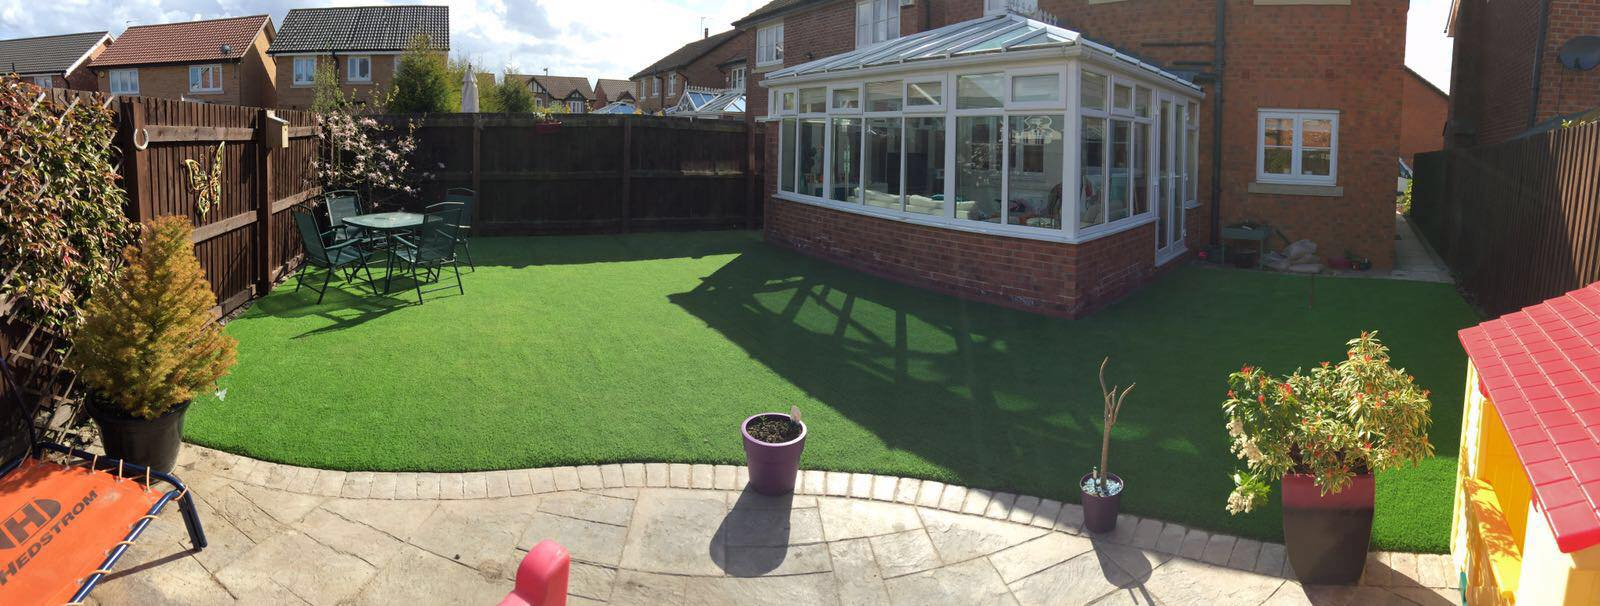 Artificial Grass in Moston